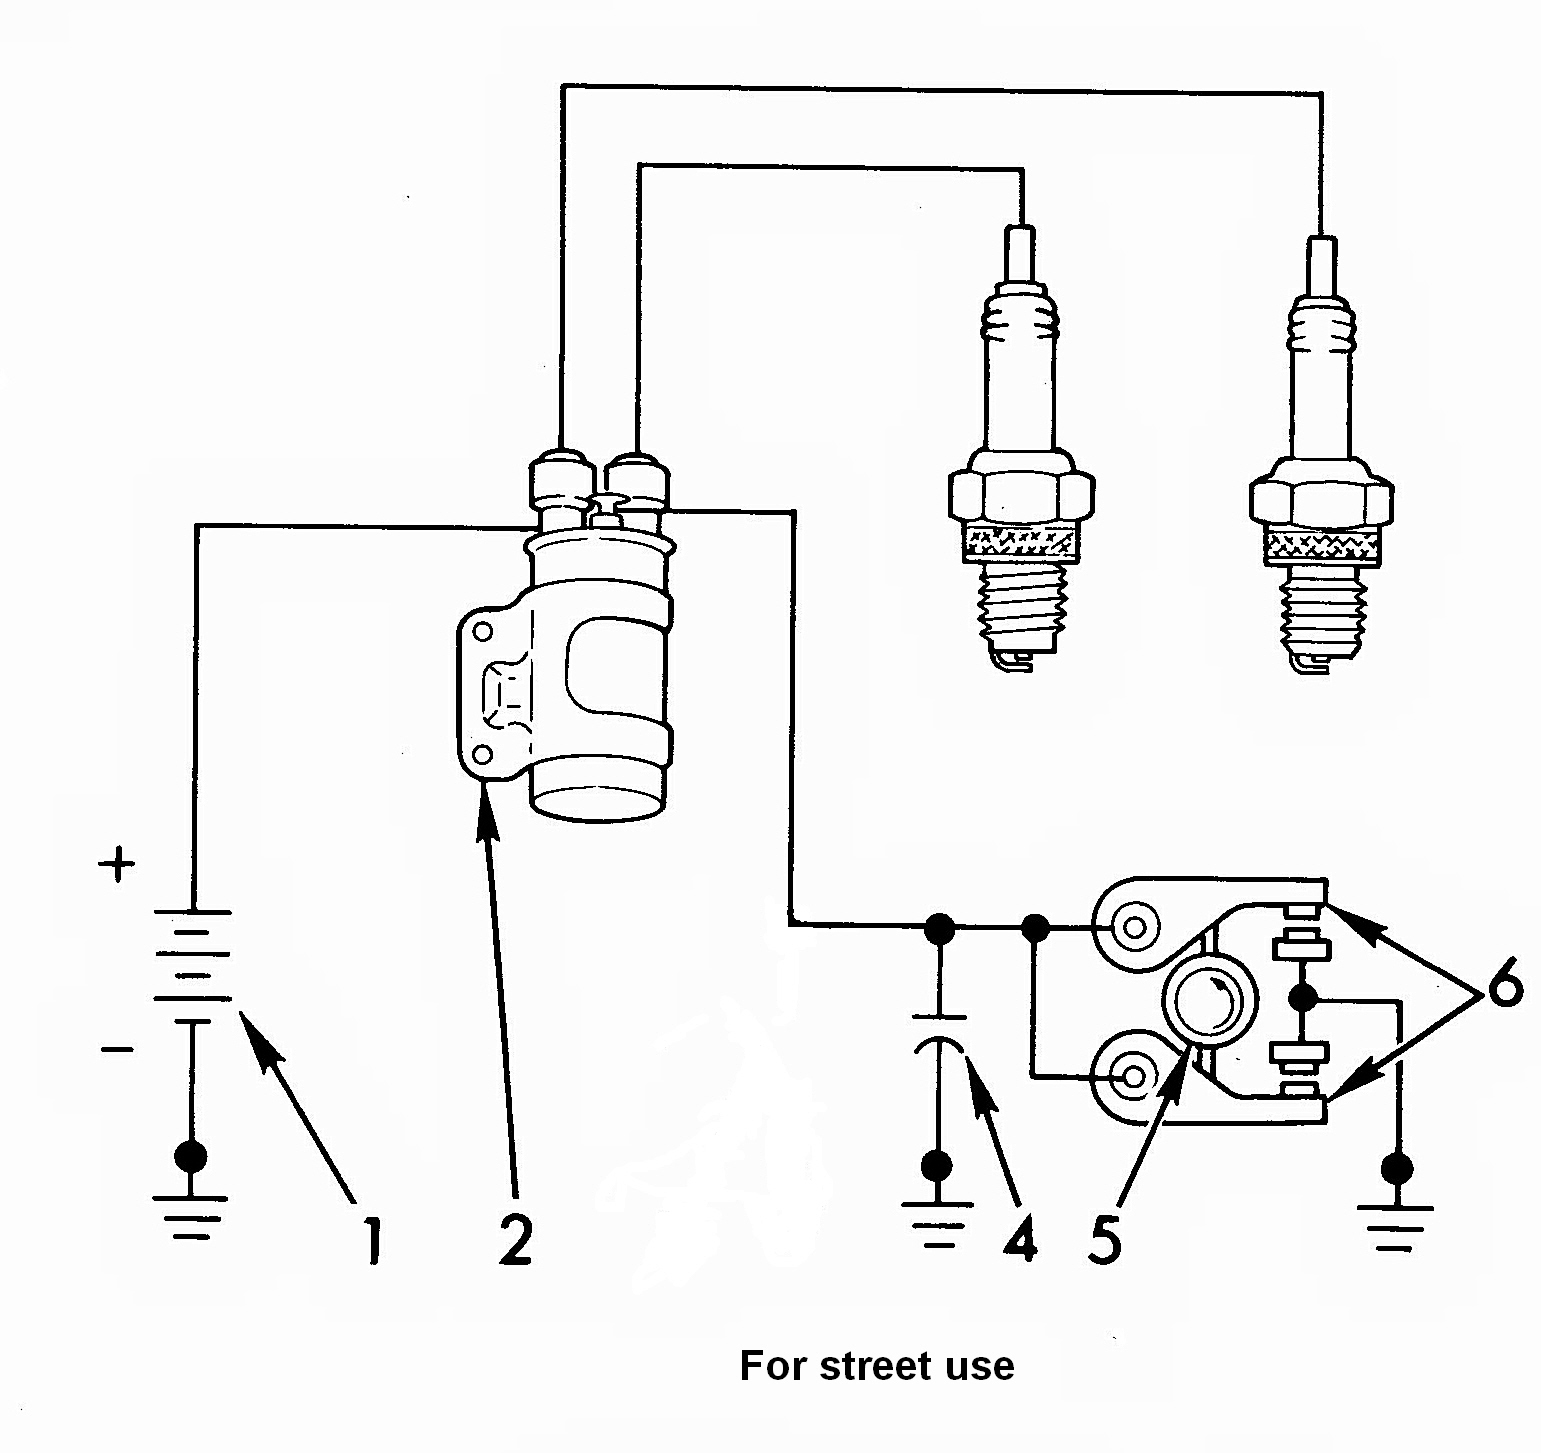 12 Volt 3 Wire Switch Diagram